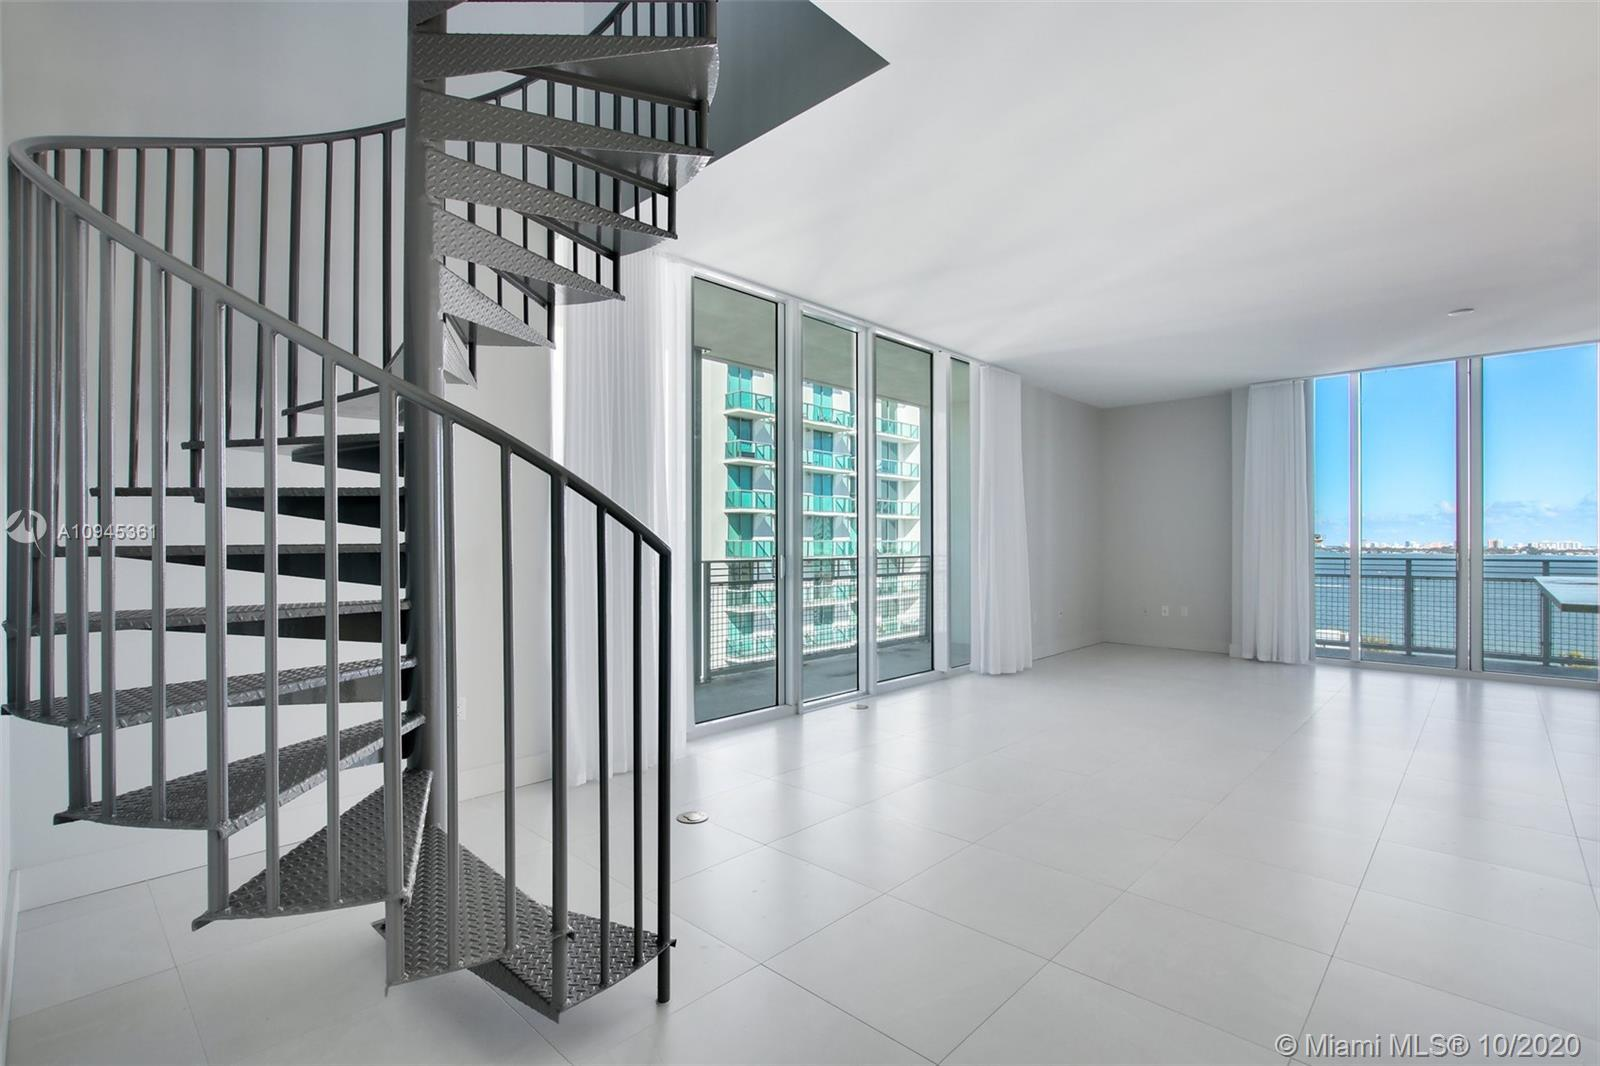 Rooftops. The Ultimate Amenity! Make this One-of-a-kind NE Corner, 2-Story Penthouse at City 24 in E